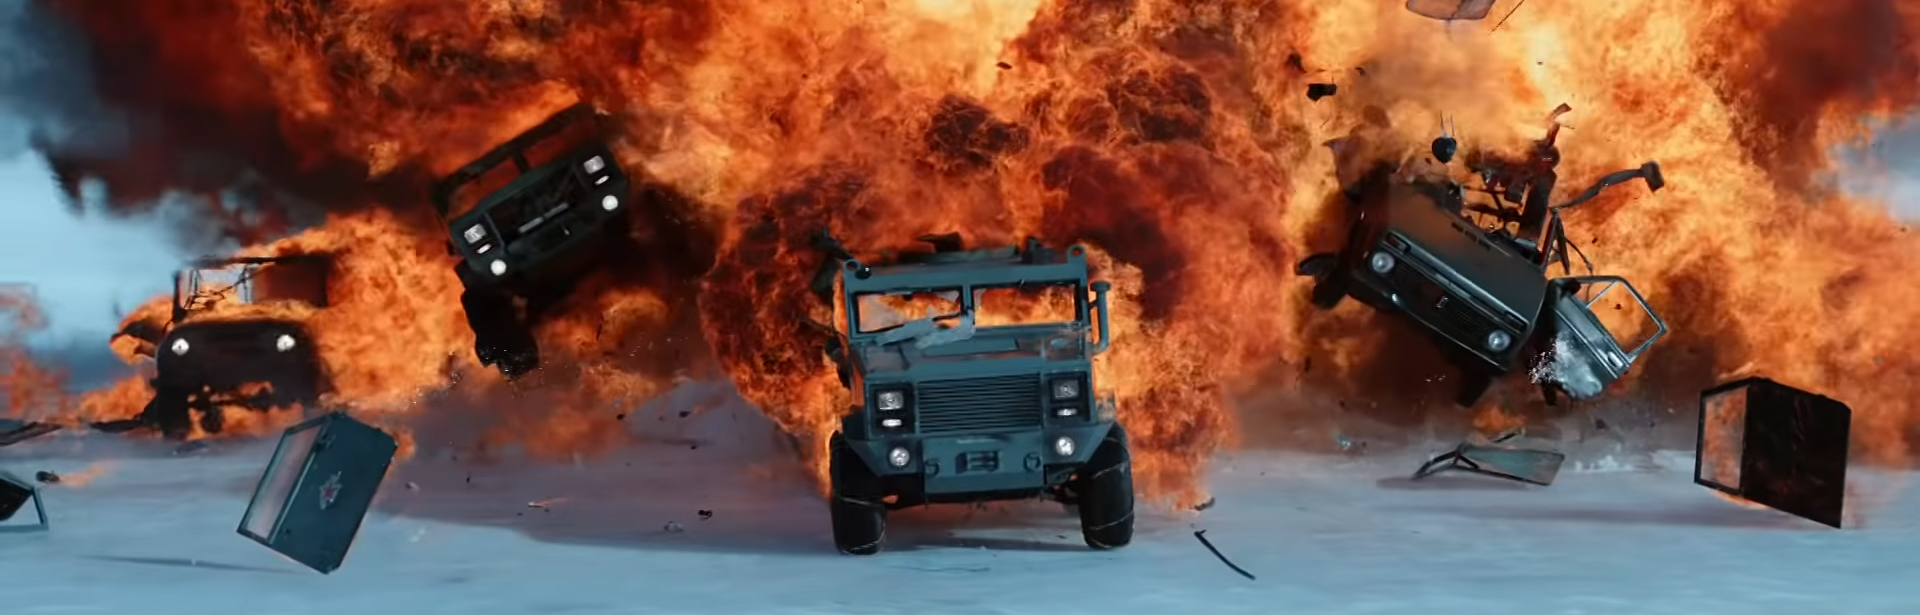 The Fate of the Furious. Image Credit: Universal Pictures.